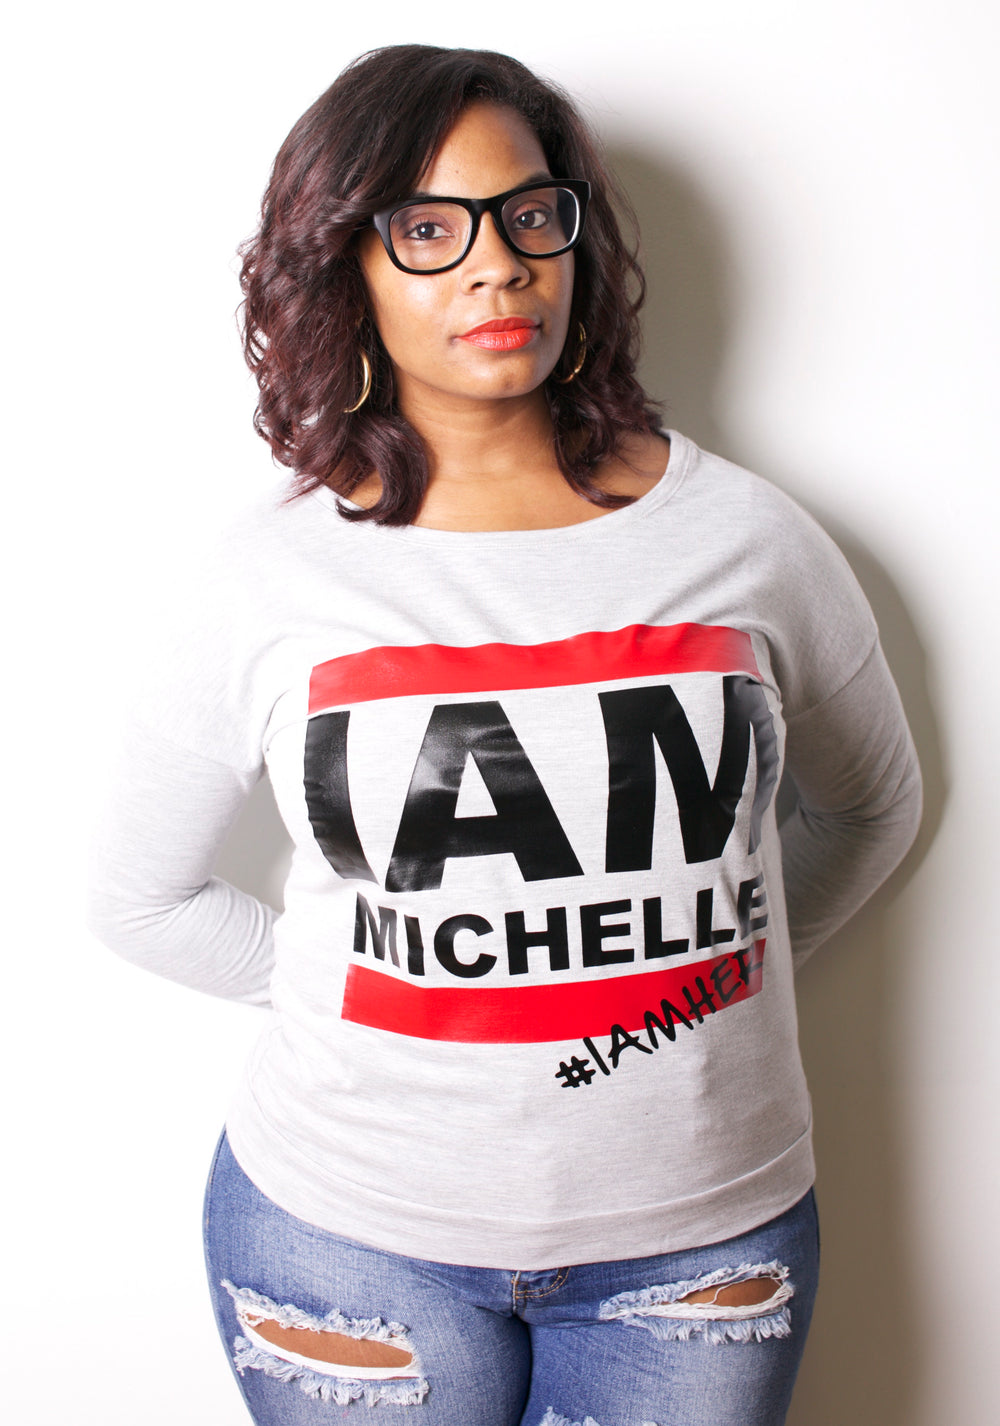 I AM MICHELLE - Women's Long Sleeve Tee - Gray - I AM HER Apparel, LLC